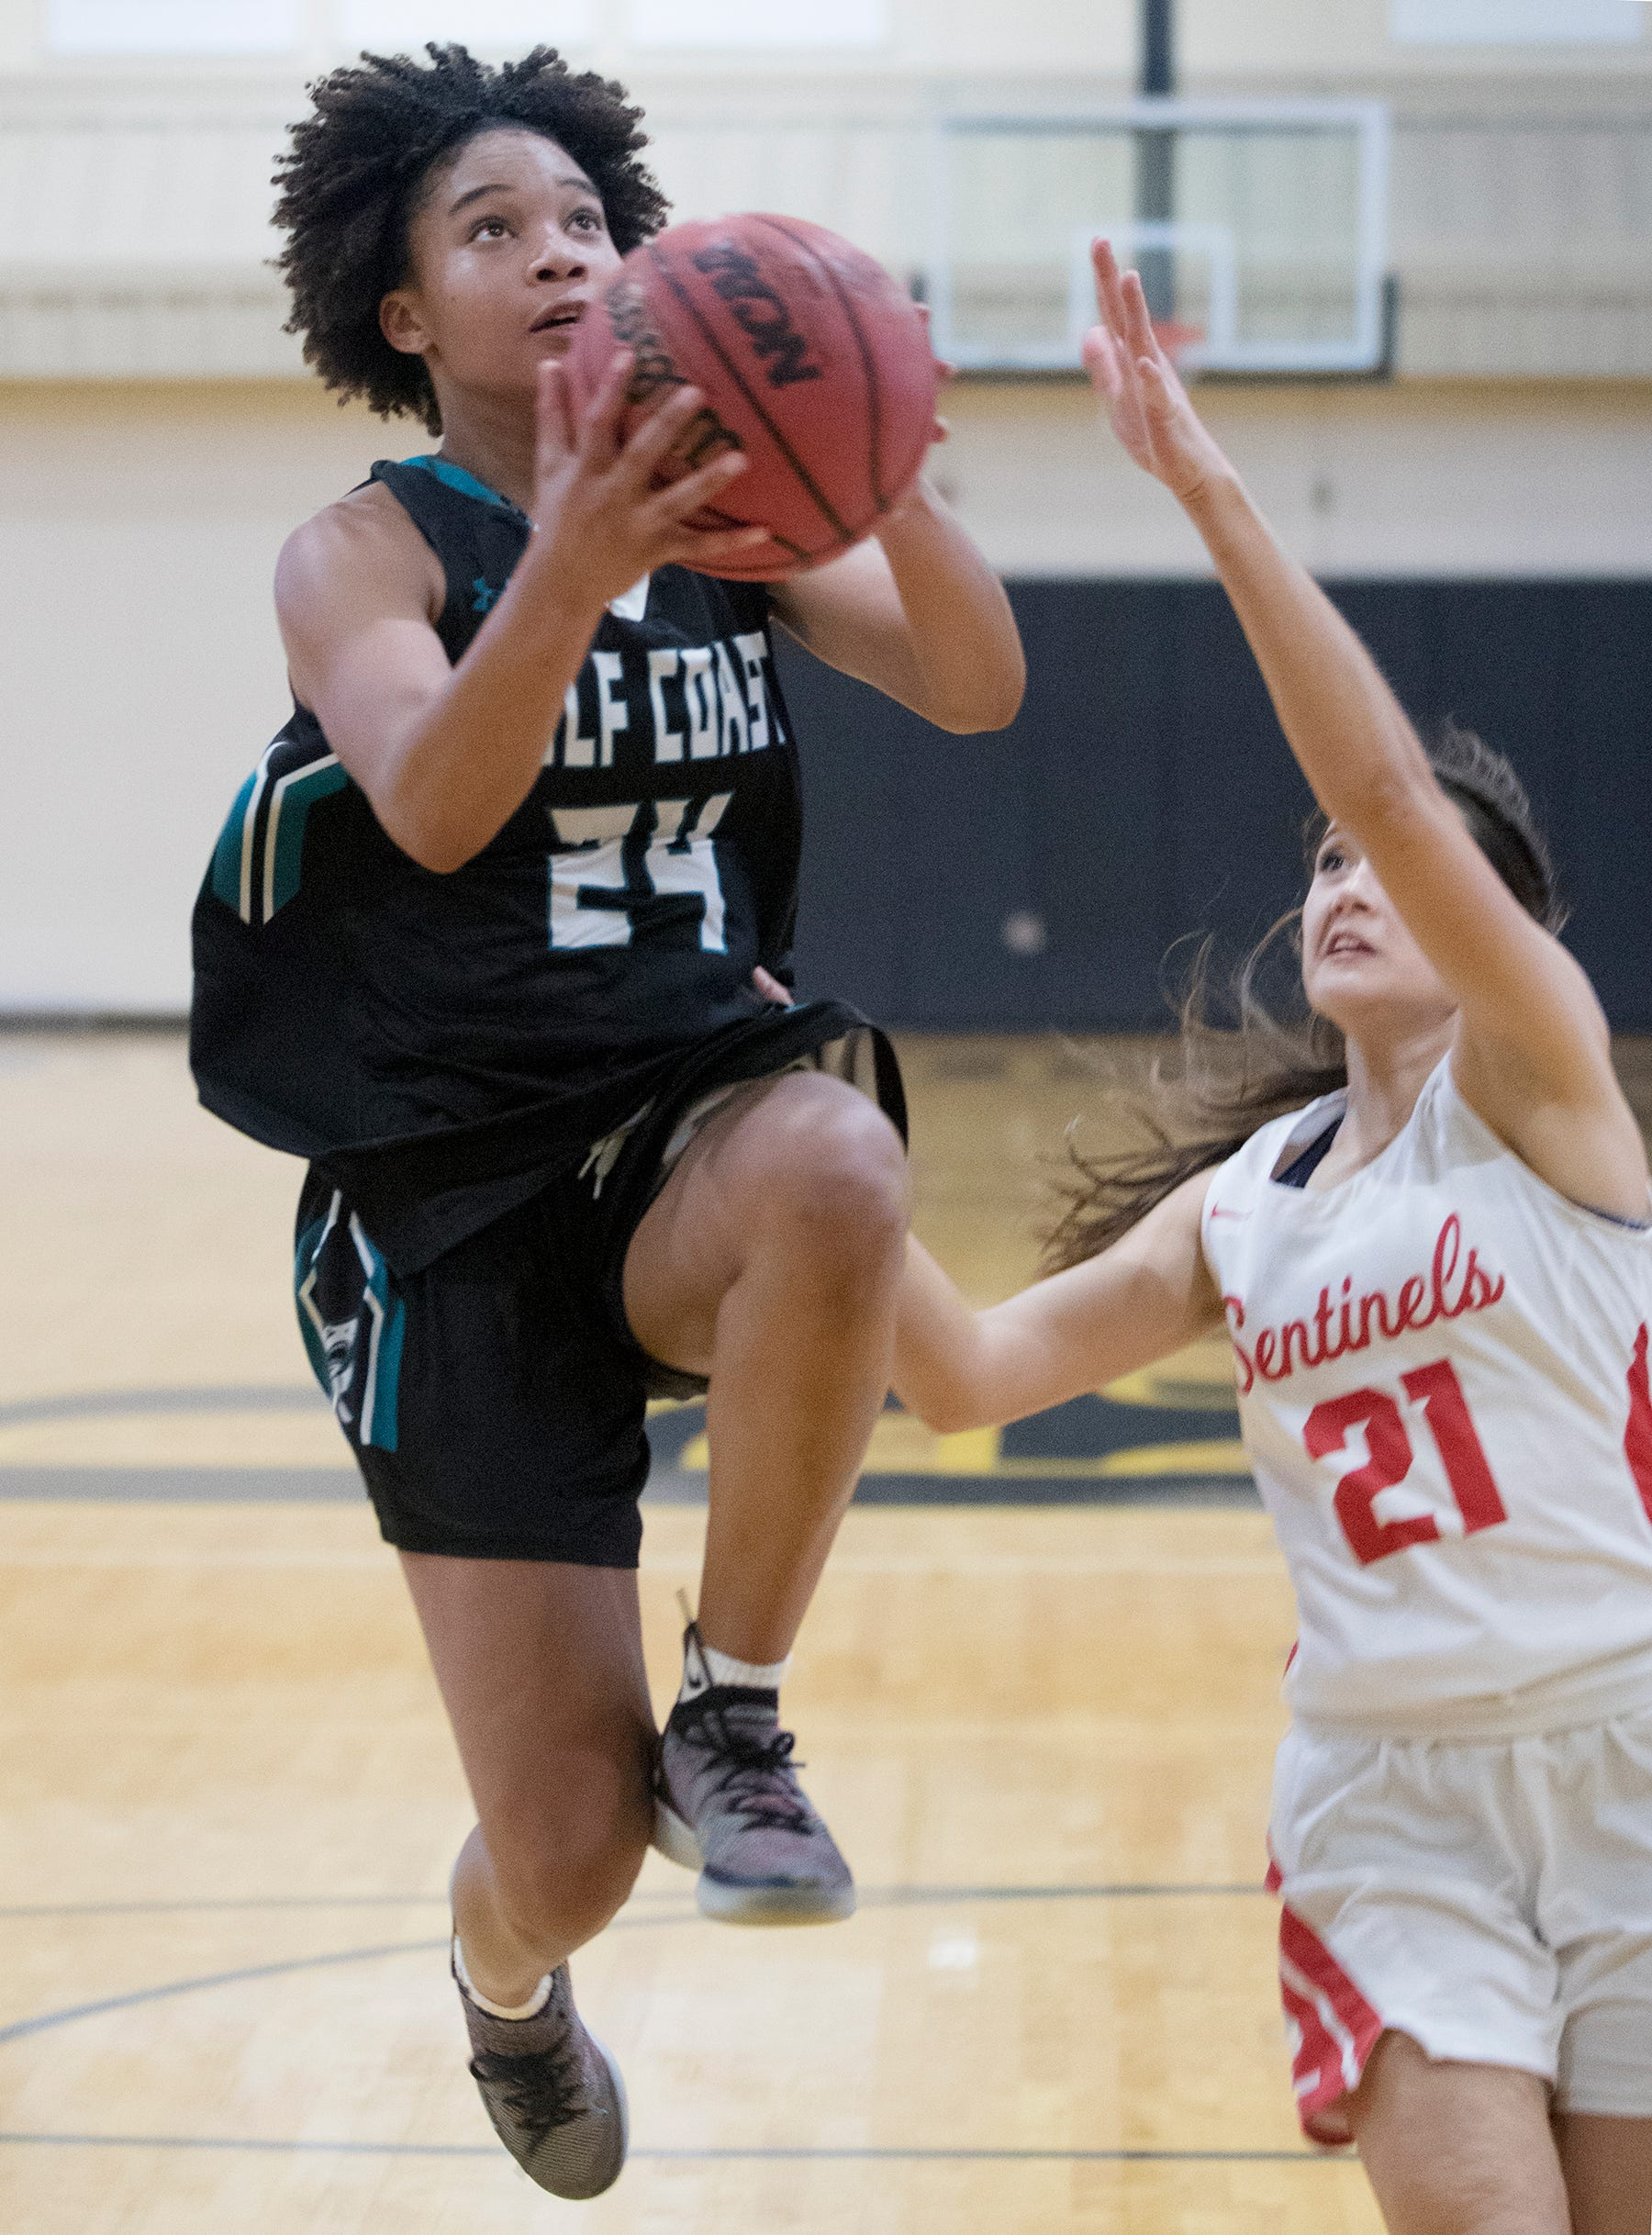 Gulf Coast High School's Yasmeen Chang, left, is defended by Evangelical Christian's Elizabeth Wetmore on Sunday during the SFABC Girls All-Star Basketball Game at Bishop Verot in Fort Myers.